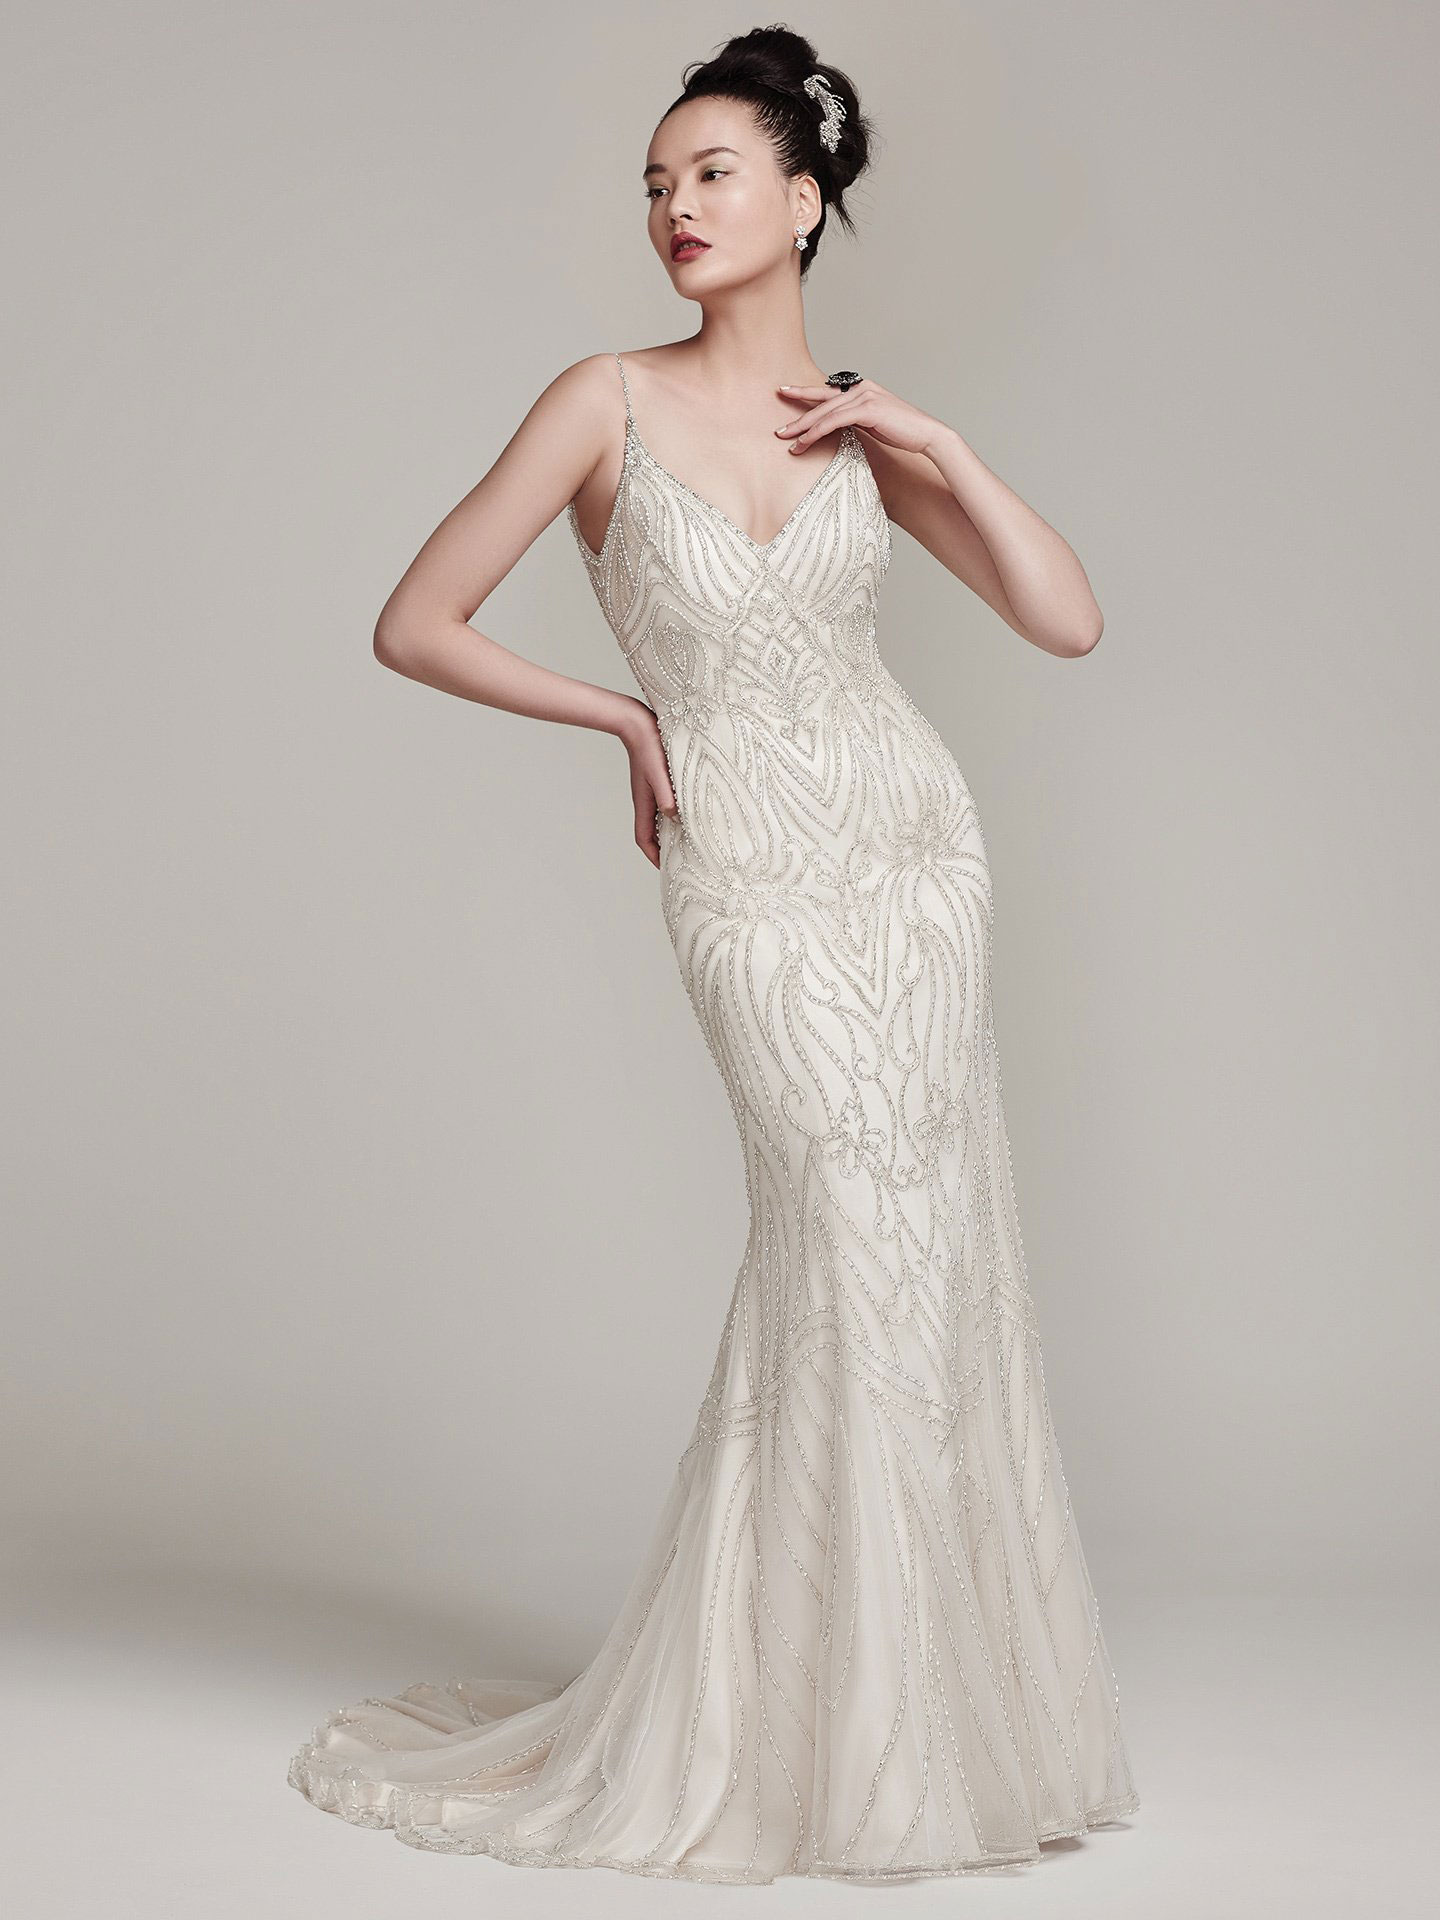 Sottero & Midgley <br> Mikelle<br>Size 12 Was £1,750 Now £1,000